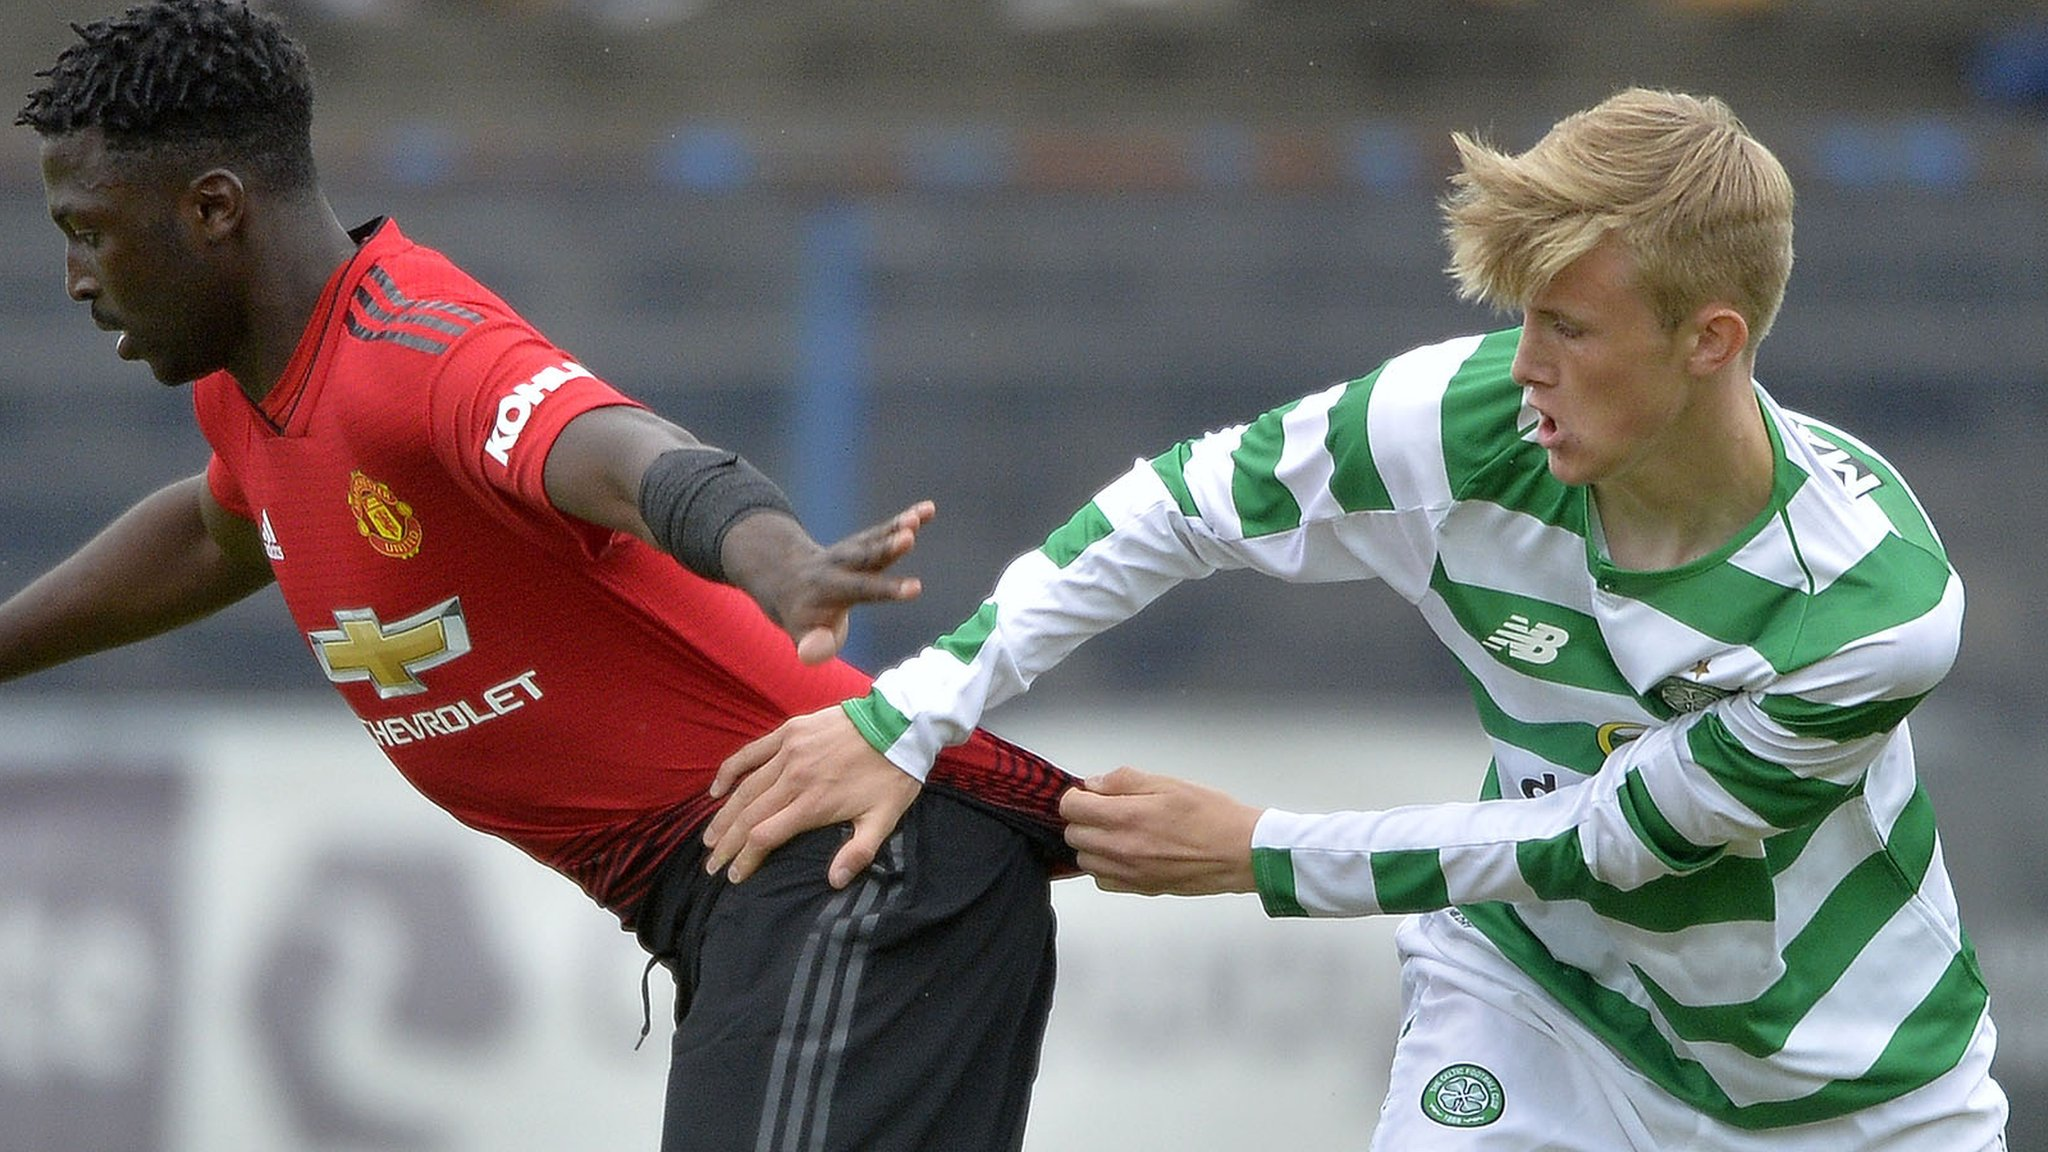 Celtic U19s come back to beat Man Utd - report and highlights